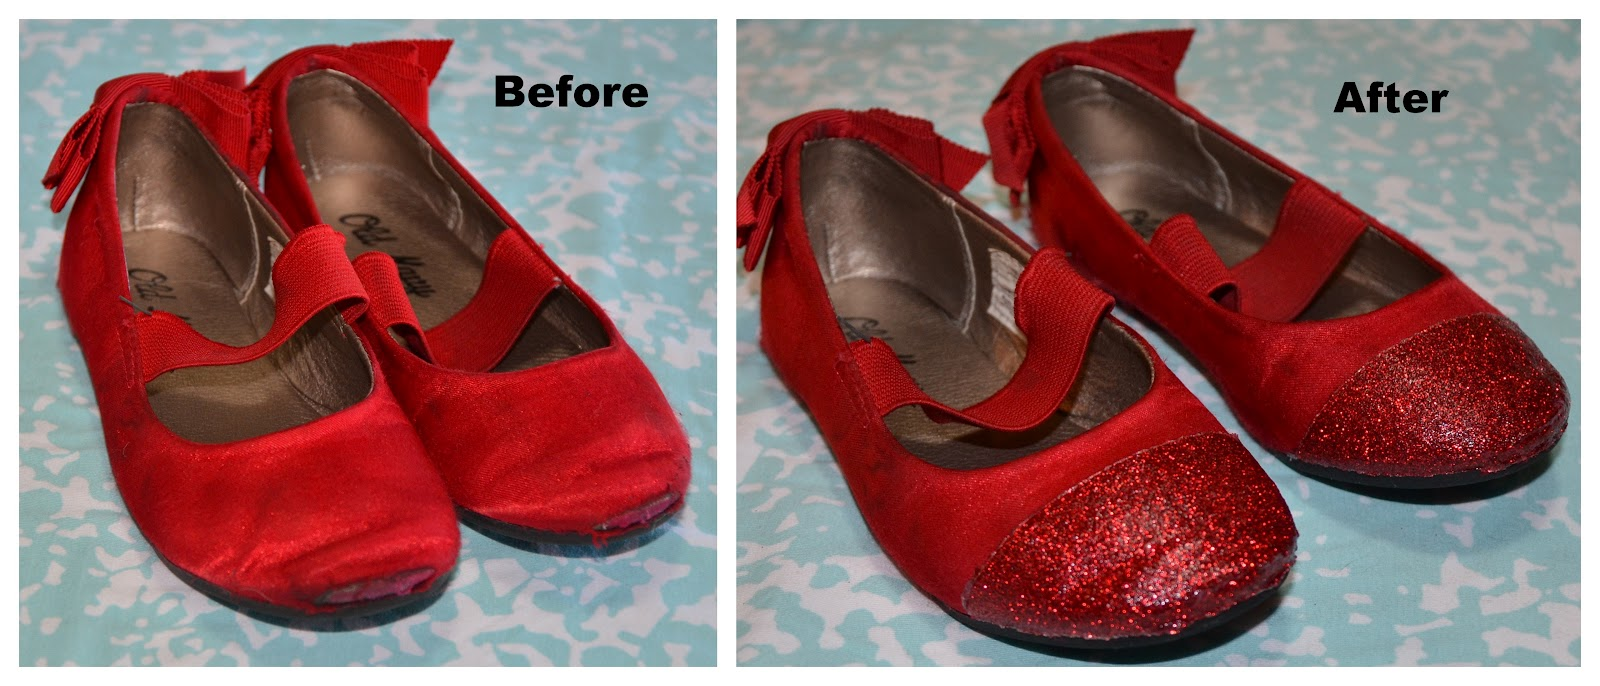 How To Fix Scuffed Toes On Shoes